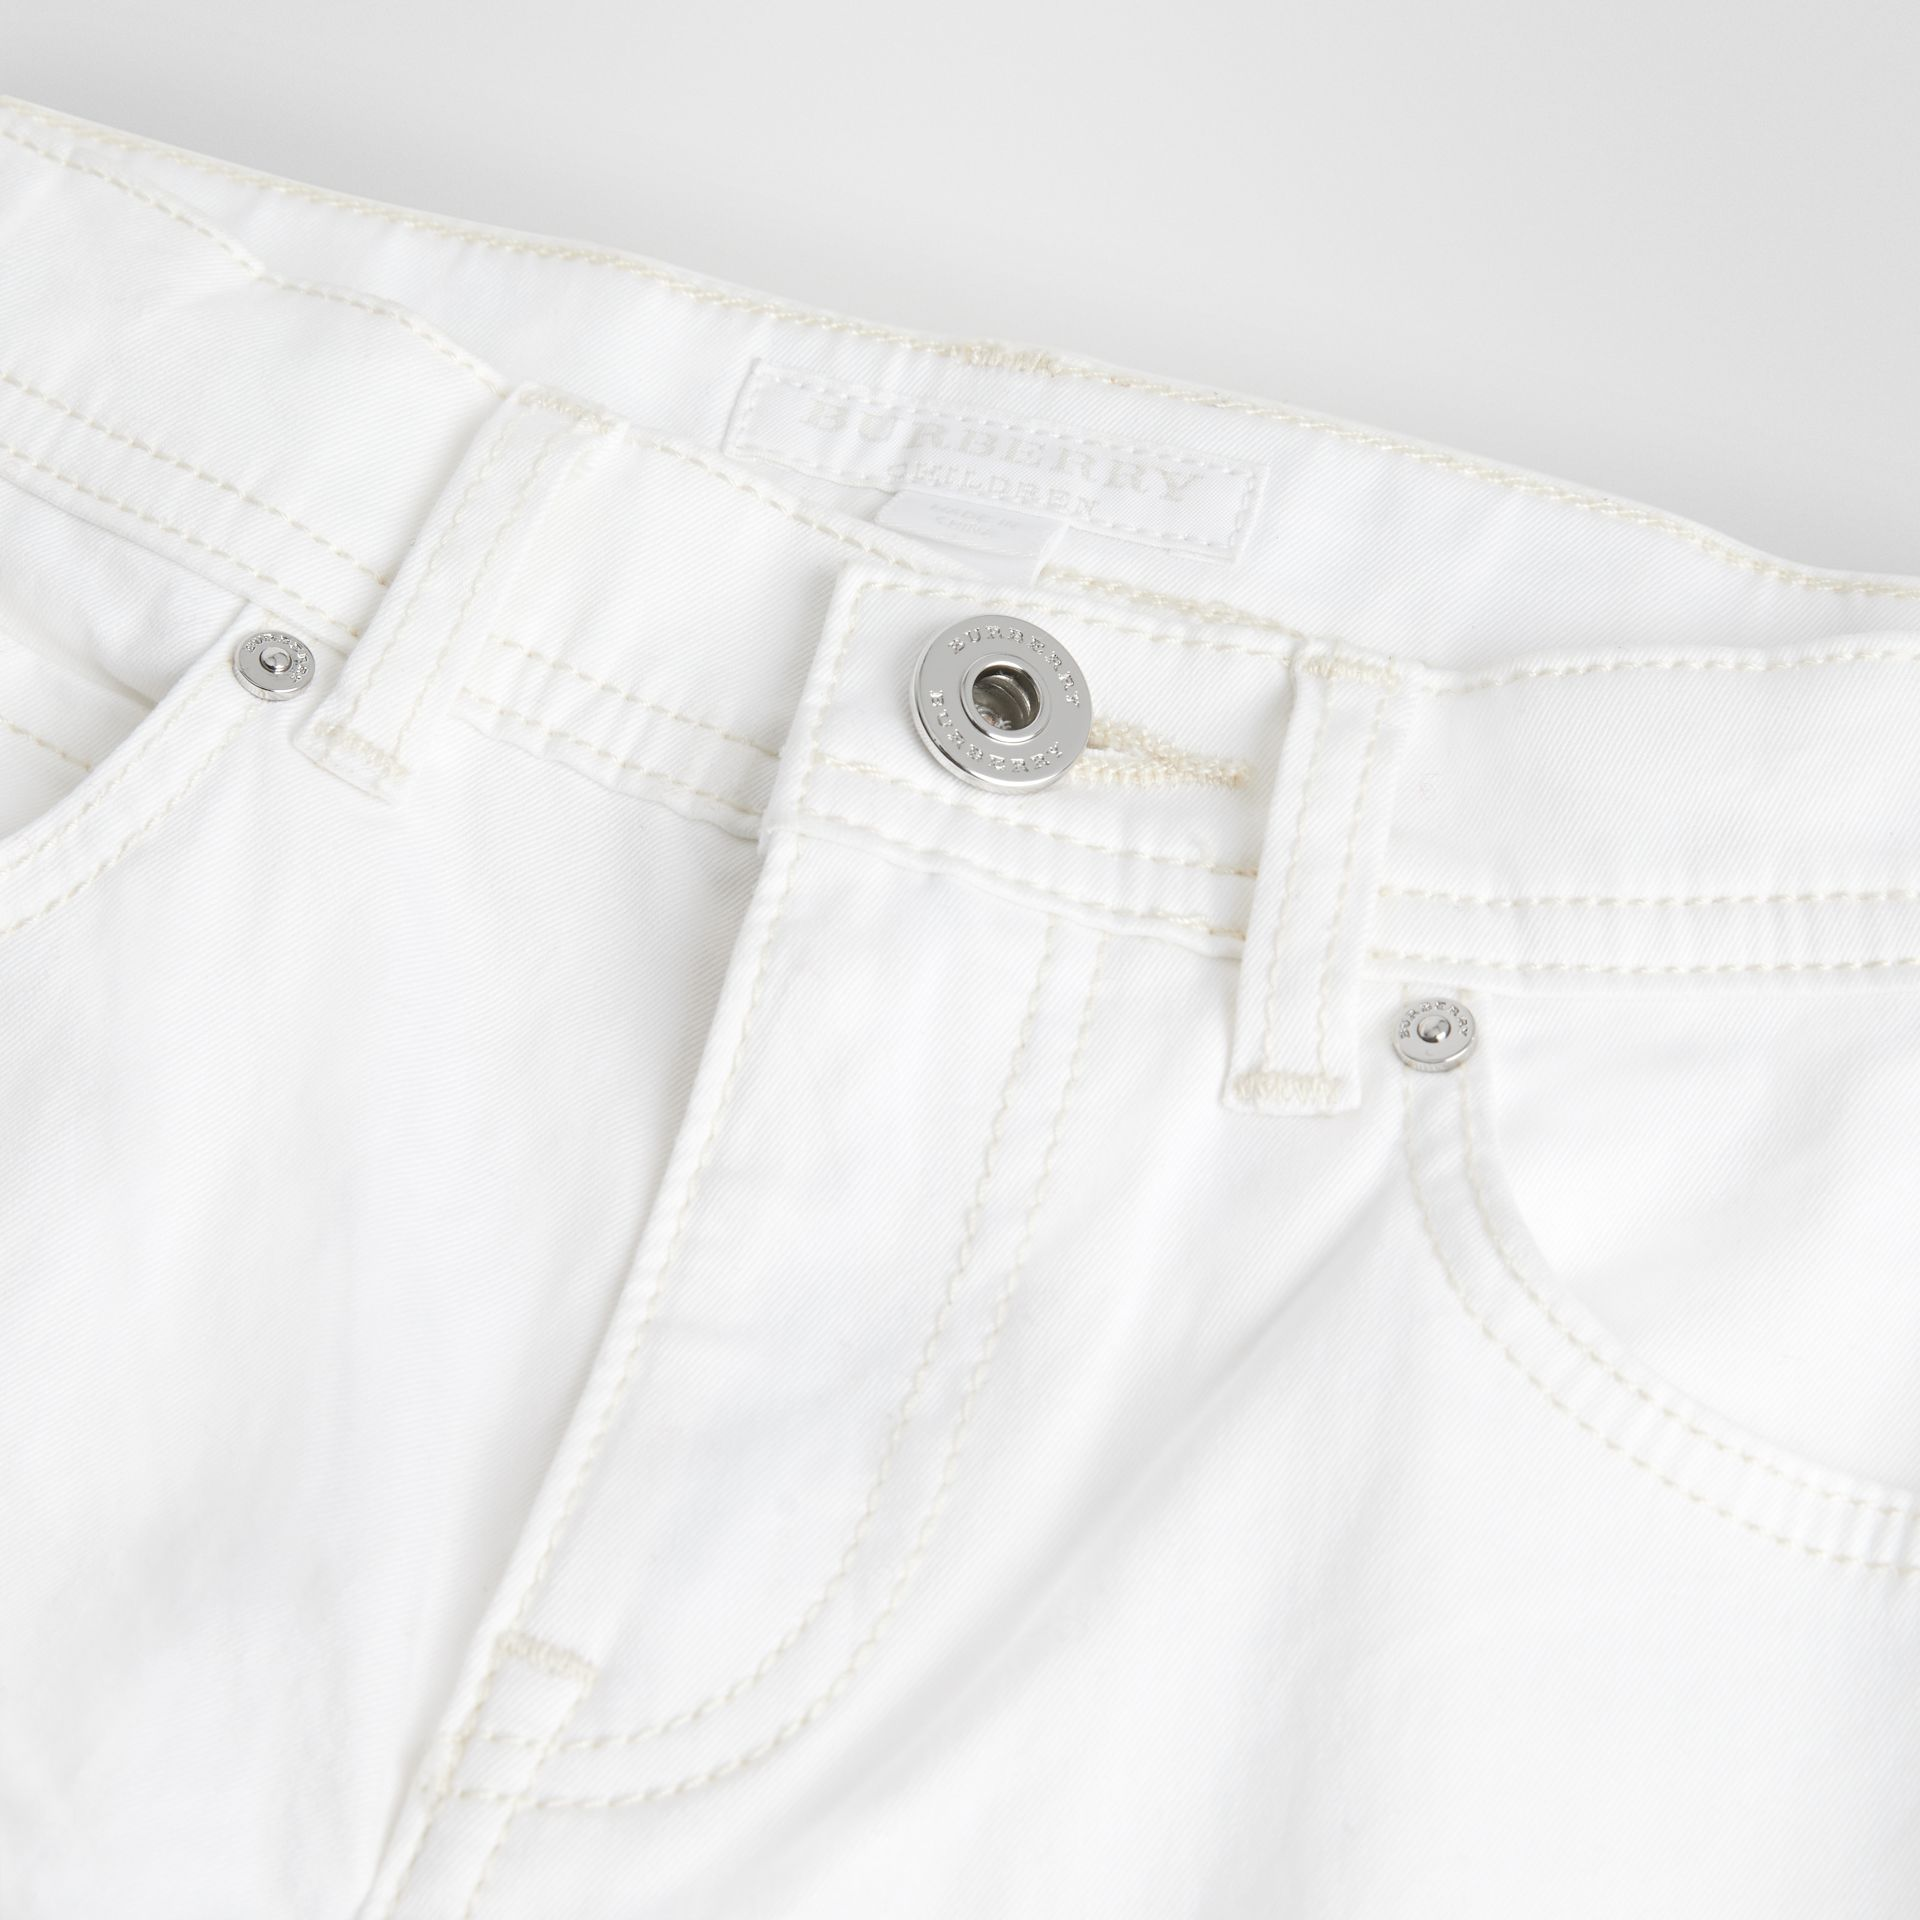 Relaxed Fit Stretch Denim Shorts in White | Burberry - gallery image 1